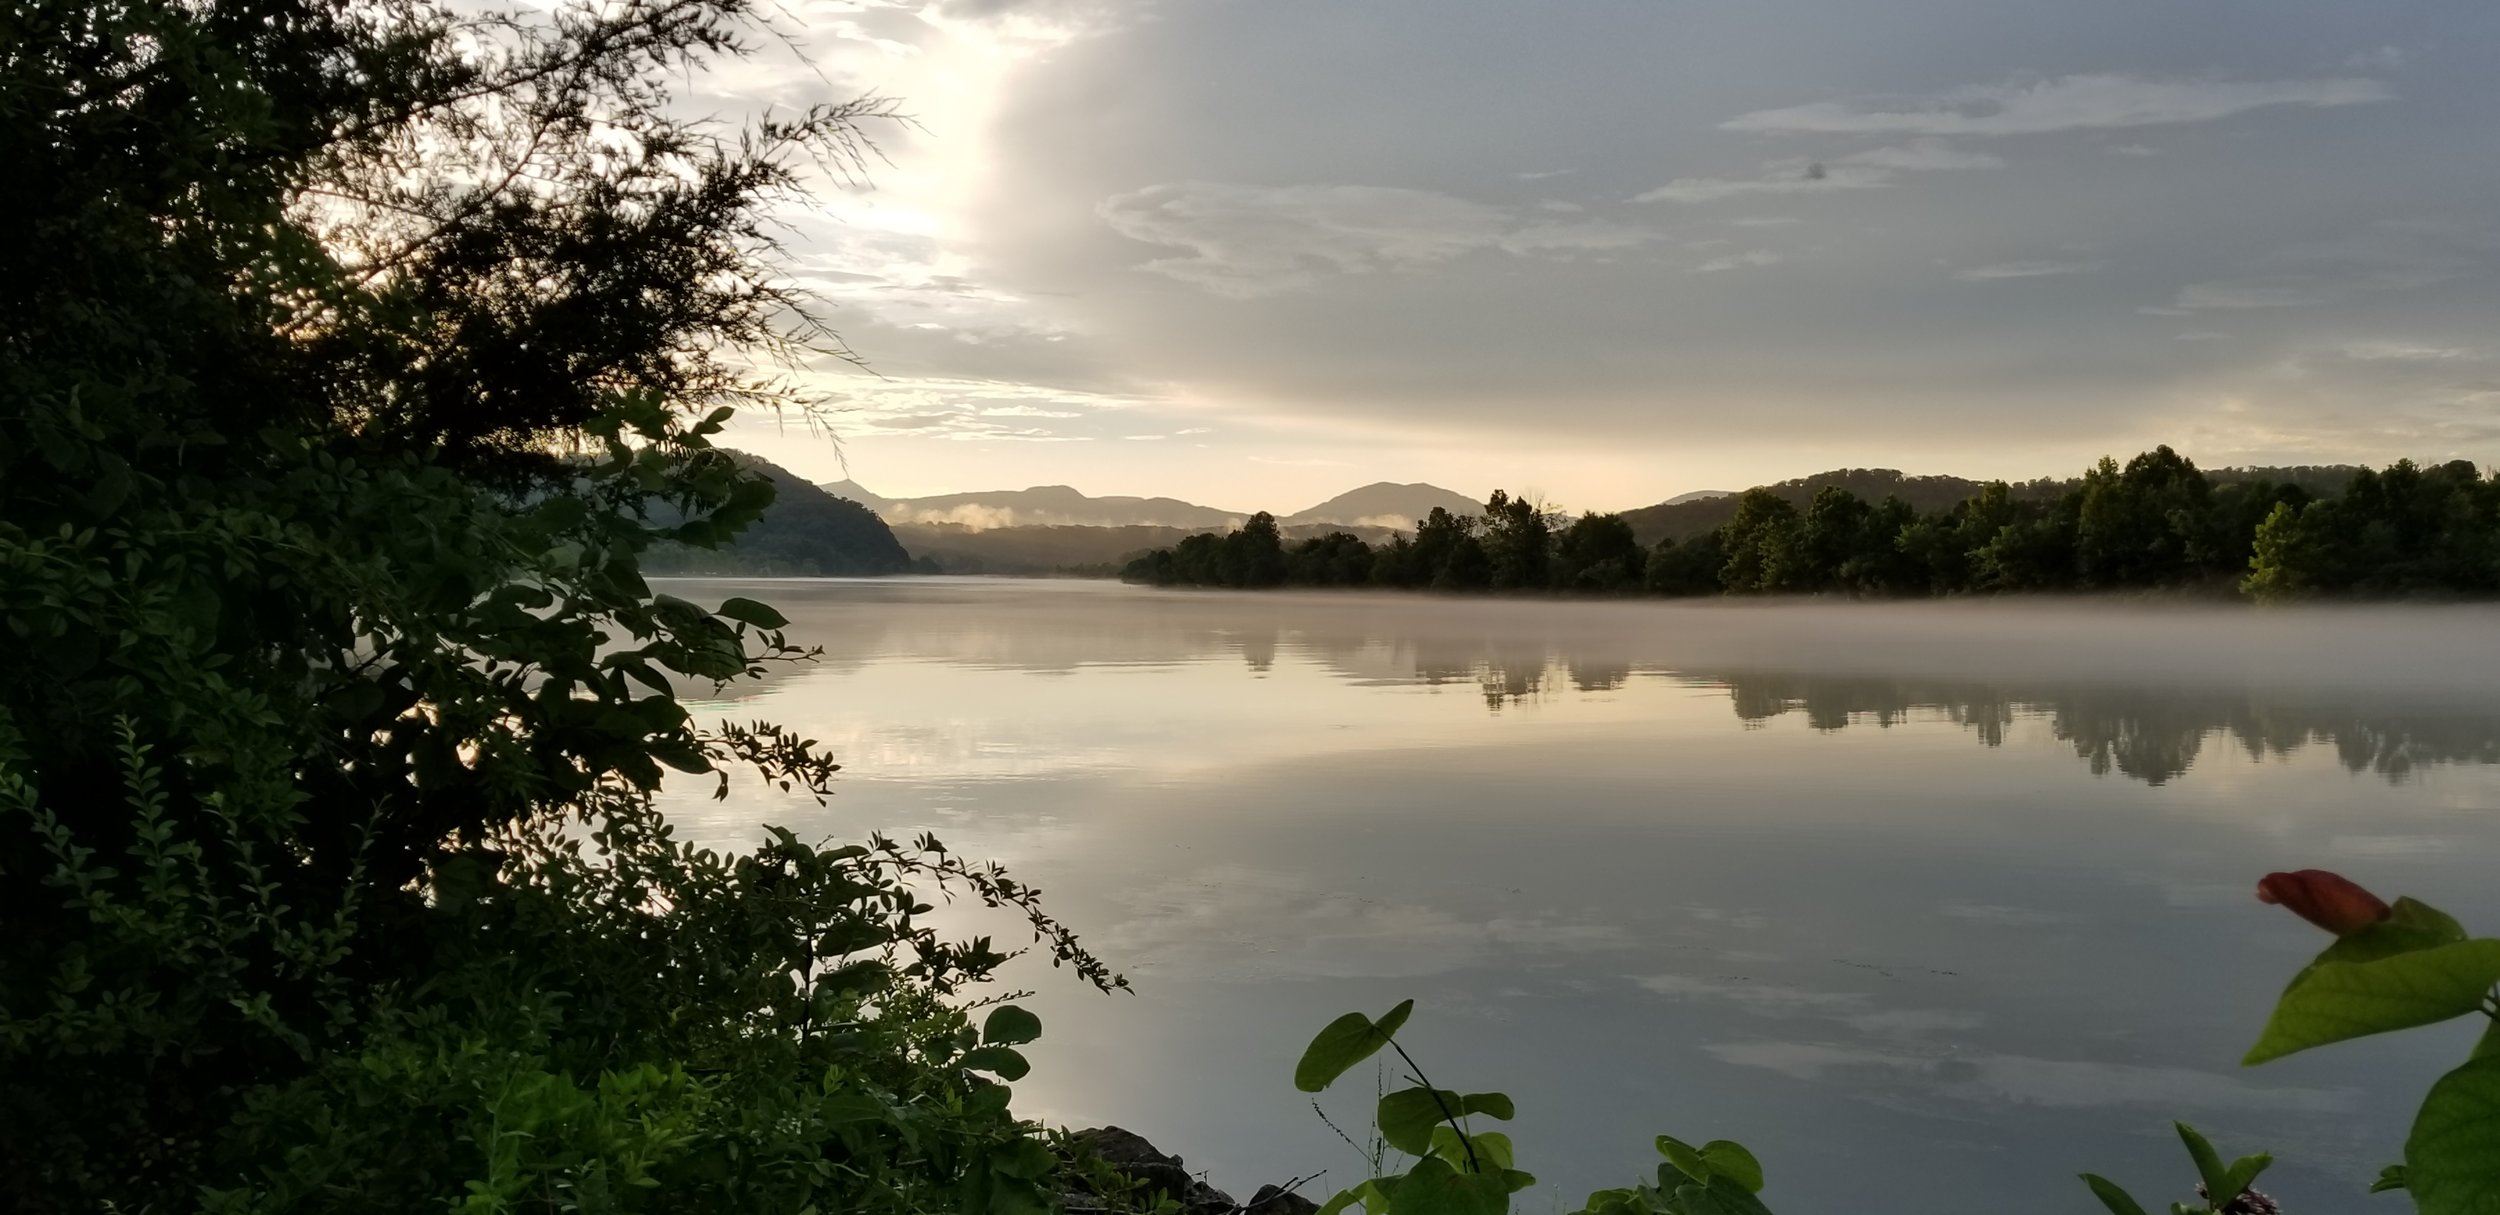 Melton Hill Lake Park